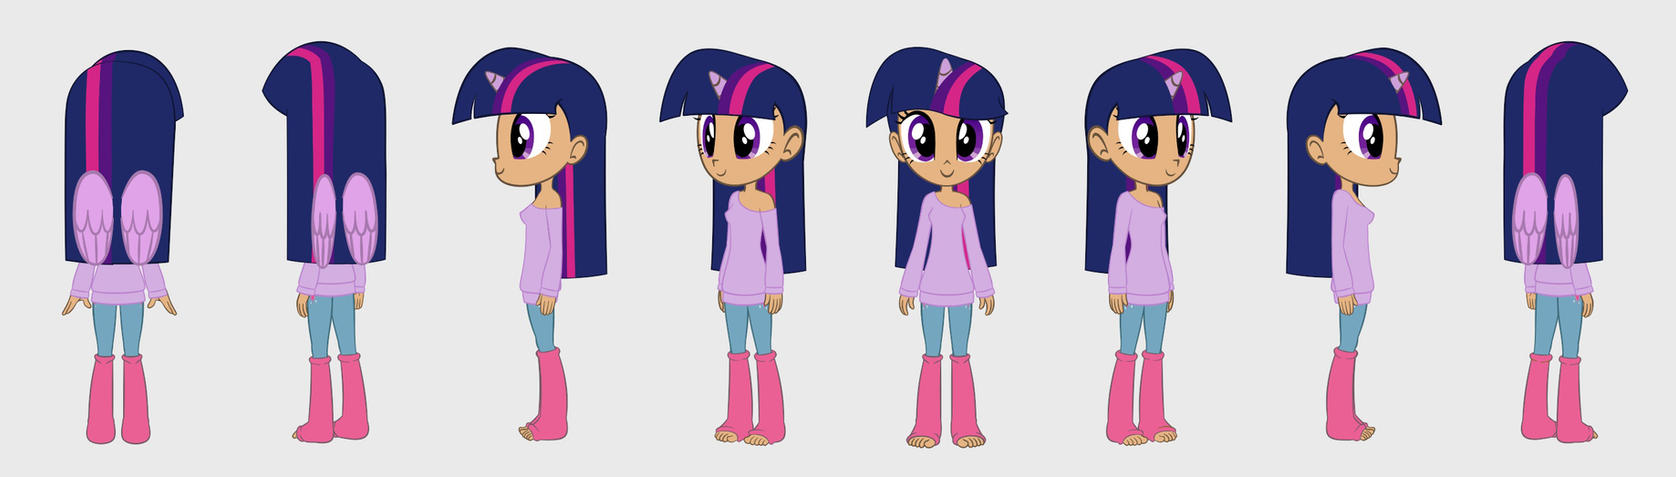 FluttERR video Twilight Sparkle profile by Chano-kun